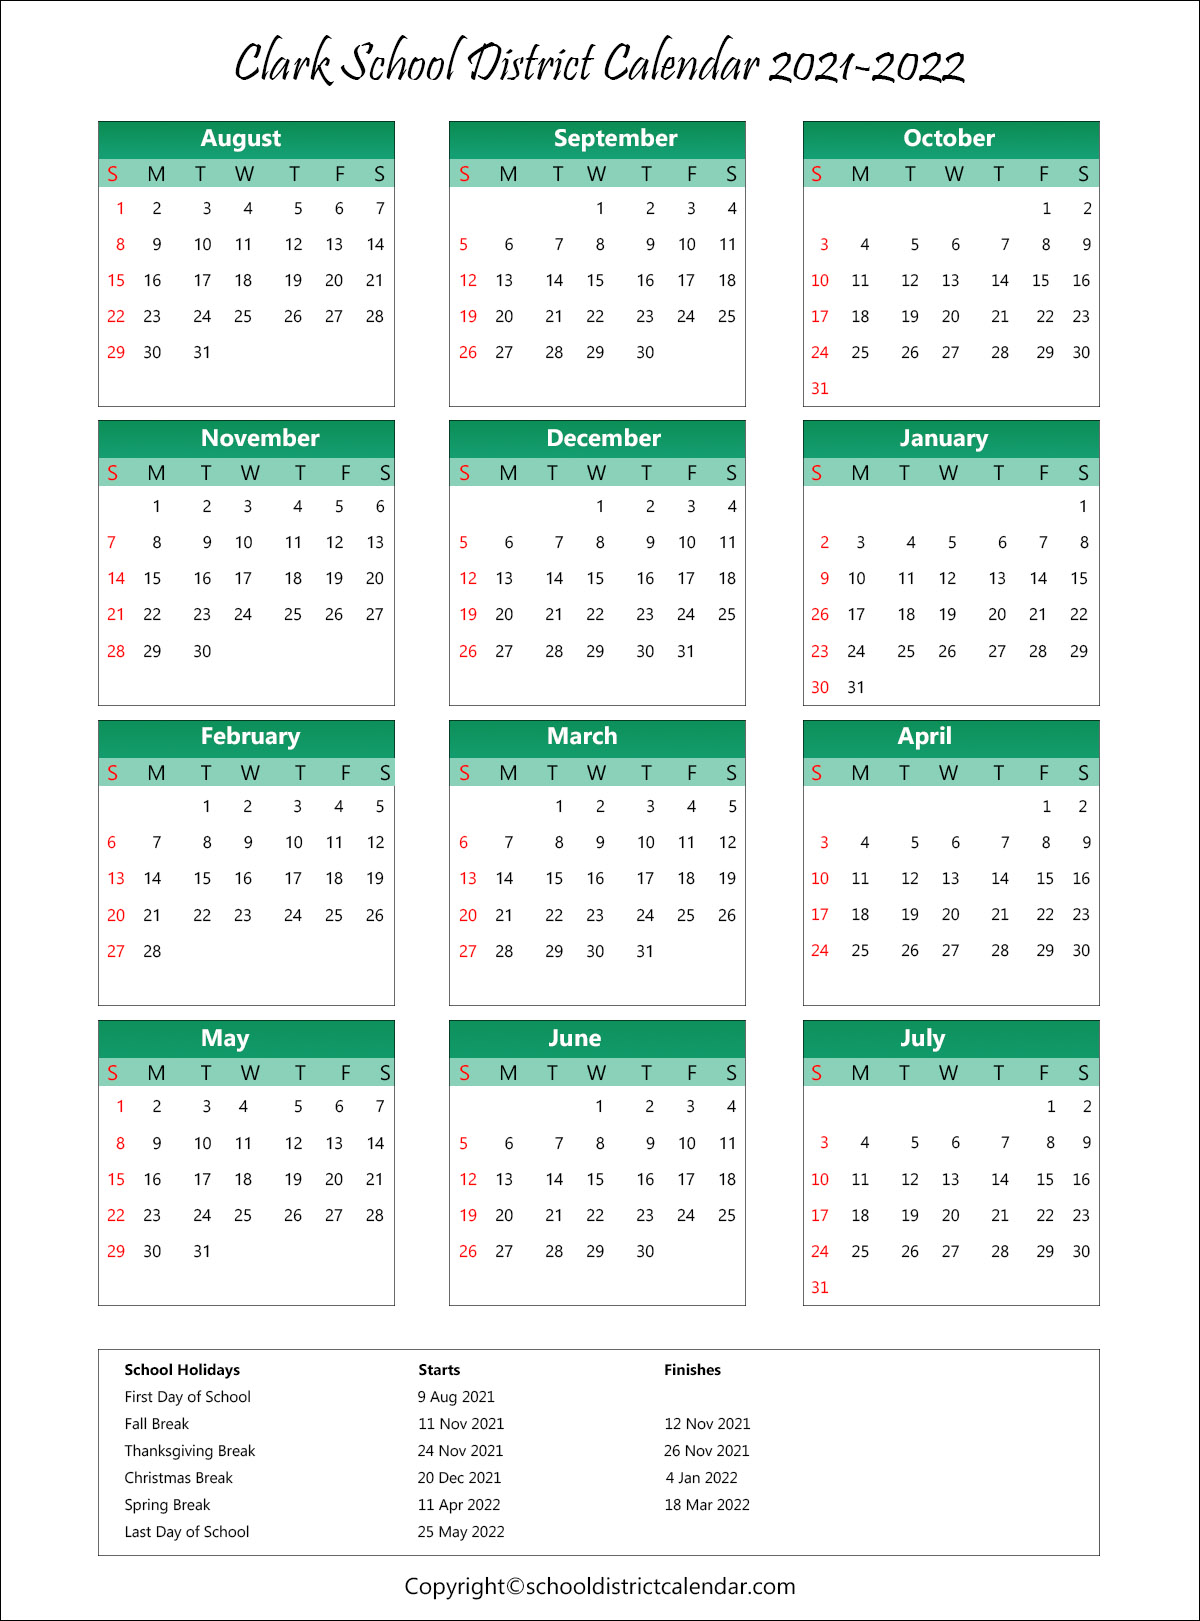 Clark School District, New Jersey Calendar Holidays 2021